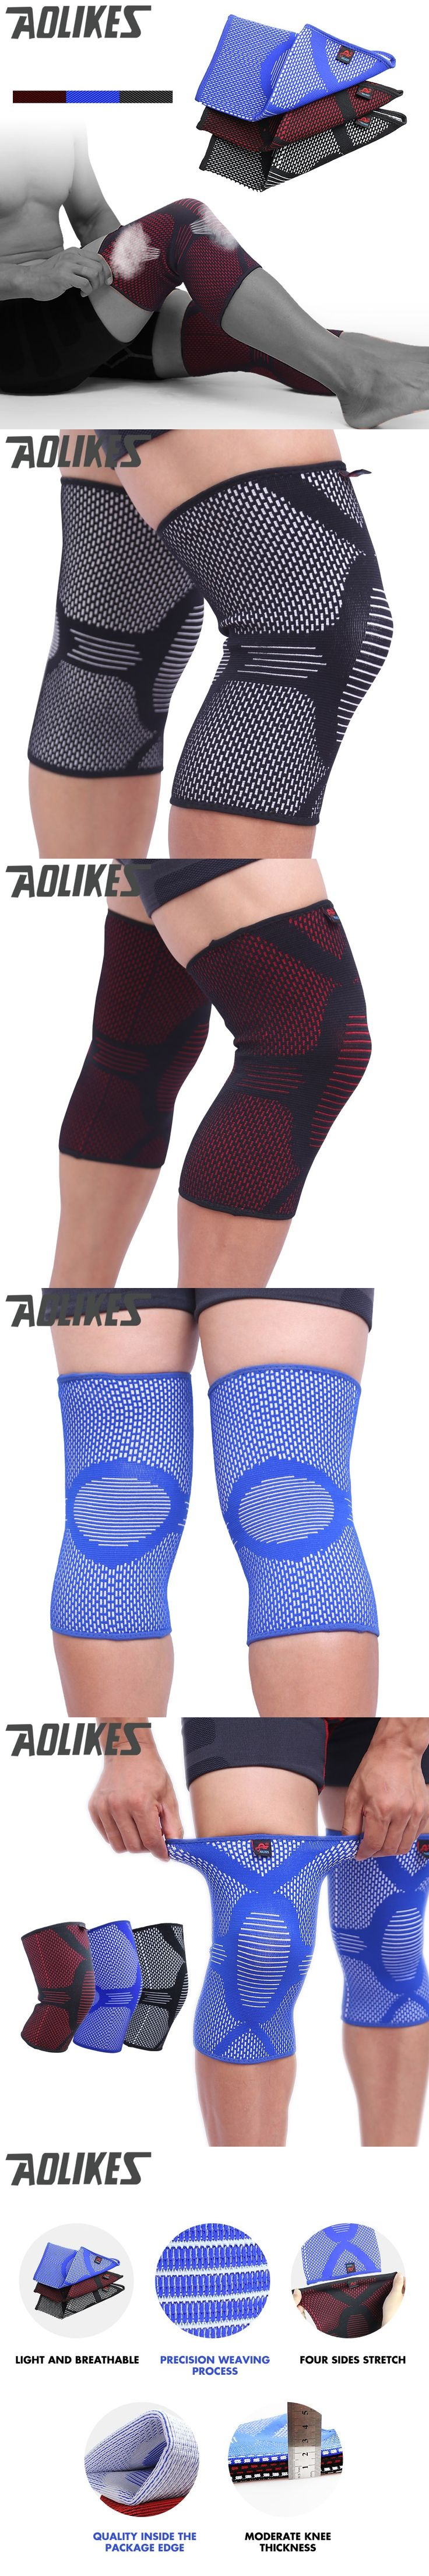 AOLIKES Nylon Elastic Basketball Knee Pads for Volleyball Knee Support Leg Sleeve Sports Knee Brace Healthy Care leg wamer